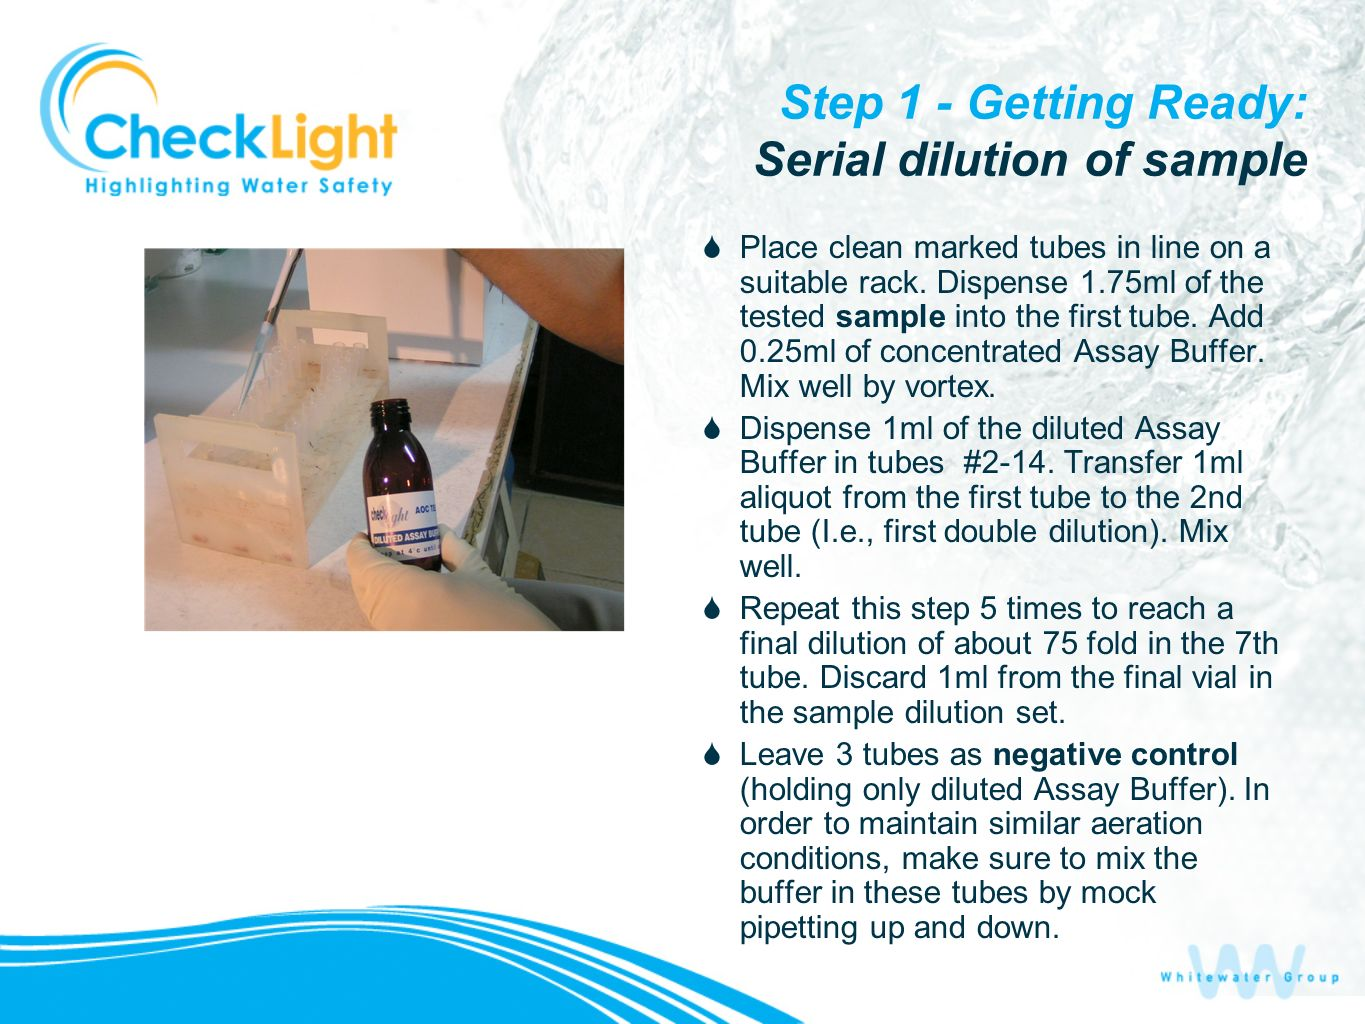 Step 1 - Getting Ready: Serial dilution of sample